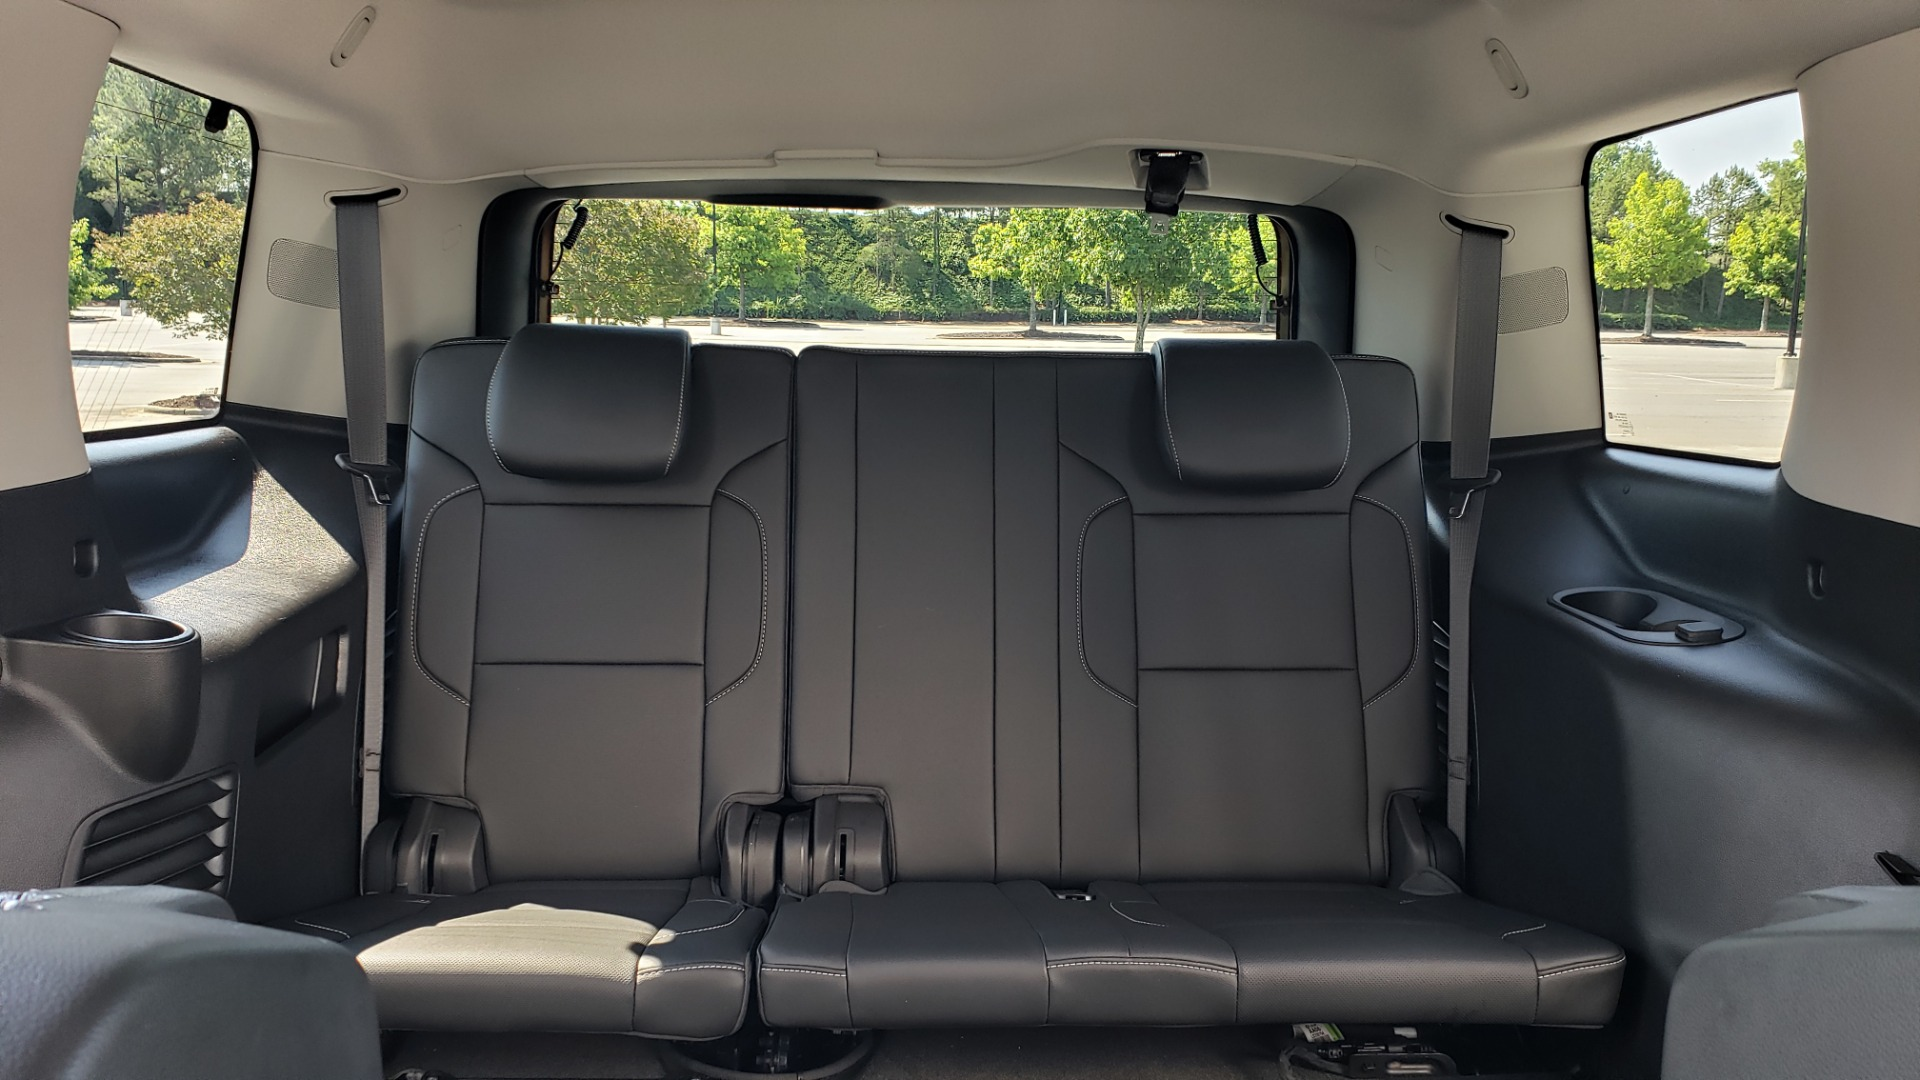 Used 2018 Chevrolet TAHOE PREMIER RST / 4X4 / NAV / BOSE / SUNROOF / 3-ROW / REARVIEW for sale $65,995 at Formula Imports in Charlotte NC 28227 72